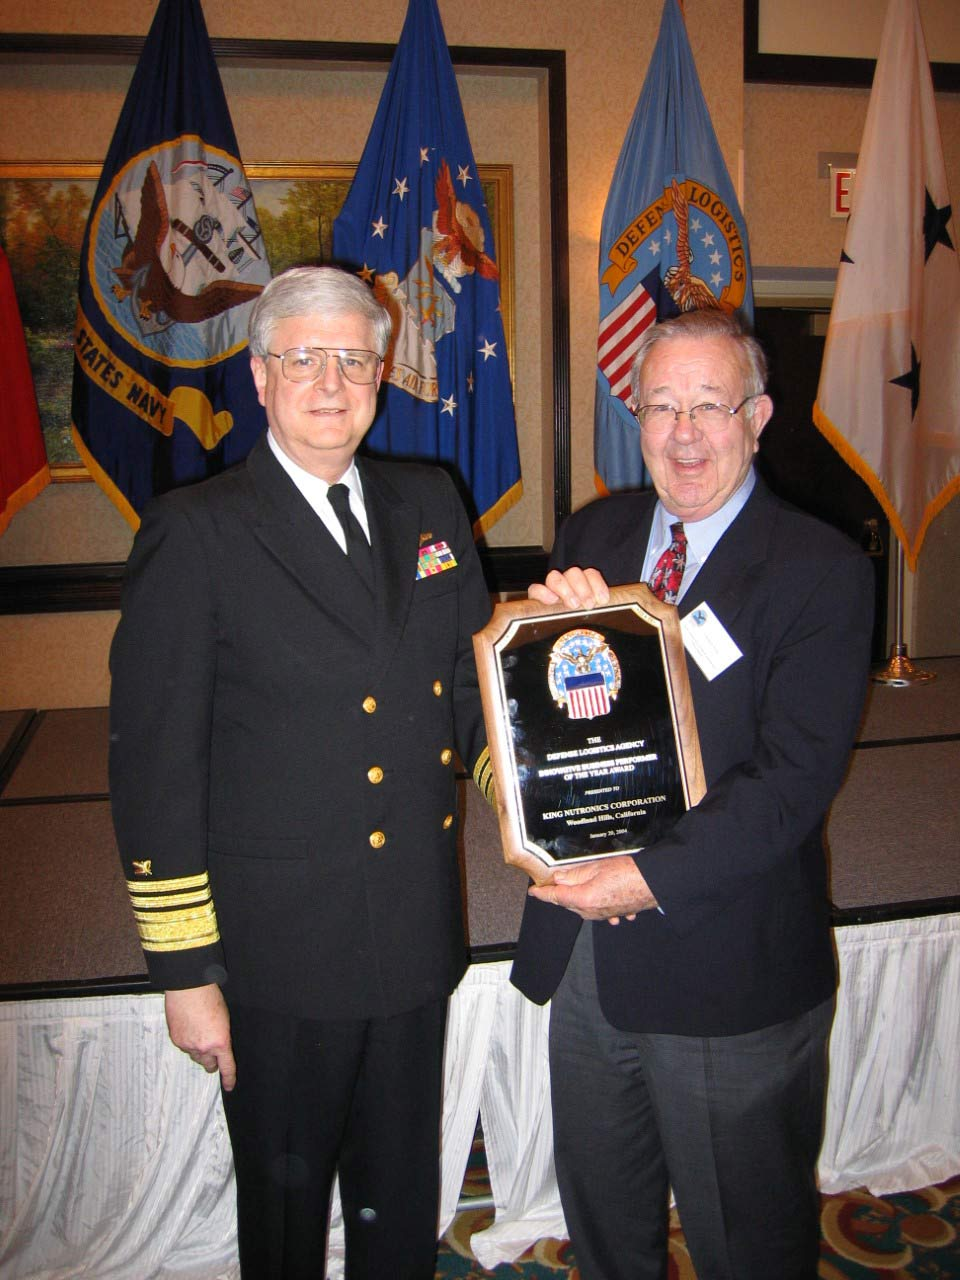 Bob King accepts DLA 2004 Defense Logistics Award from U.S. Navy Vice Admiral Keith W. Lippert